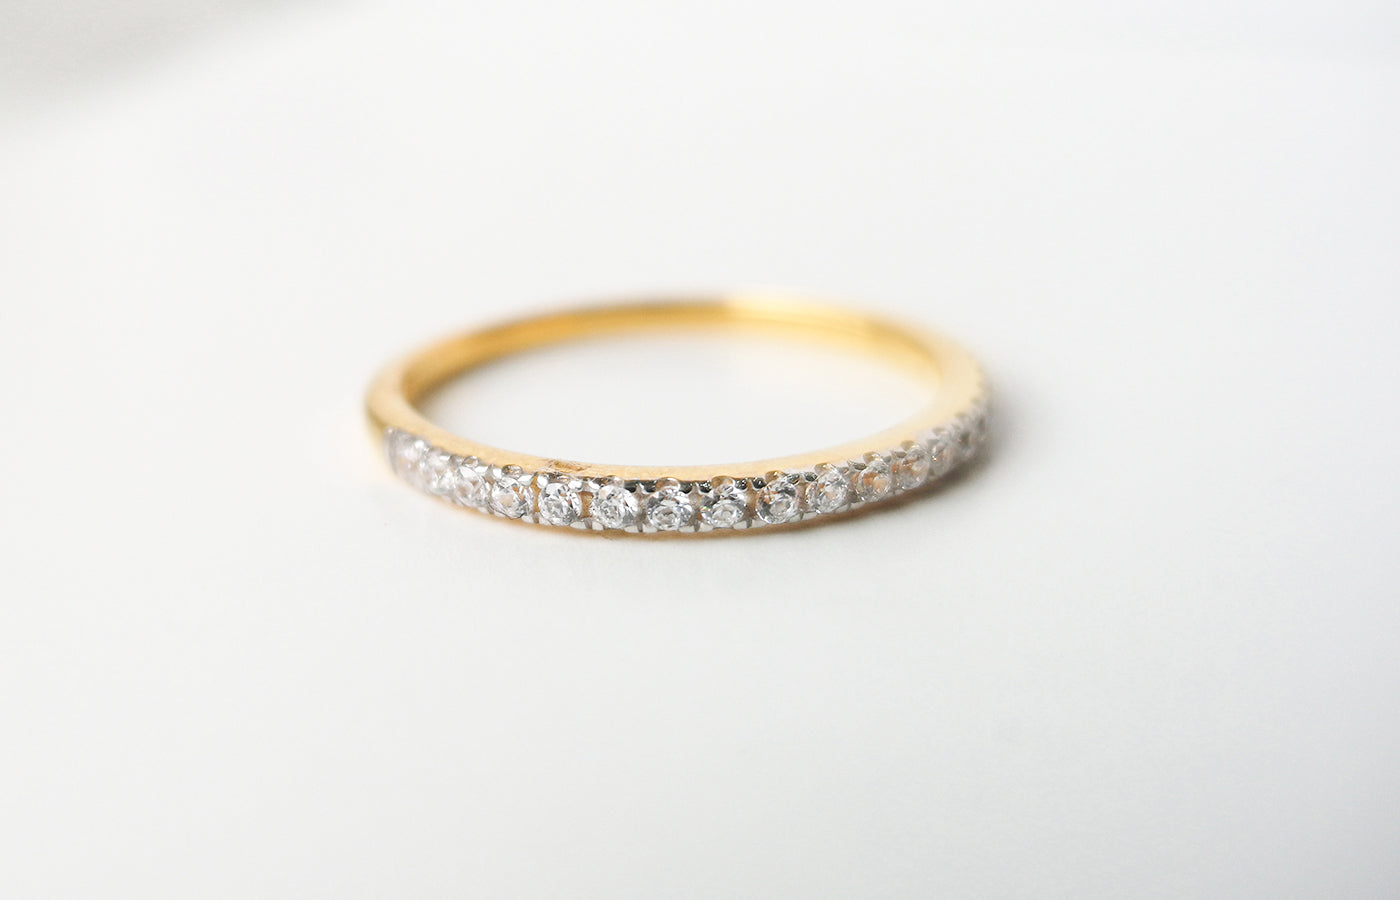 22ct Gold Eternity Ring set with Swarovski Zirconias LR14025